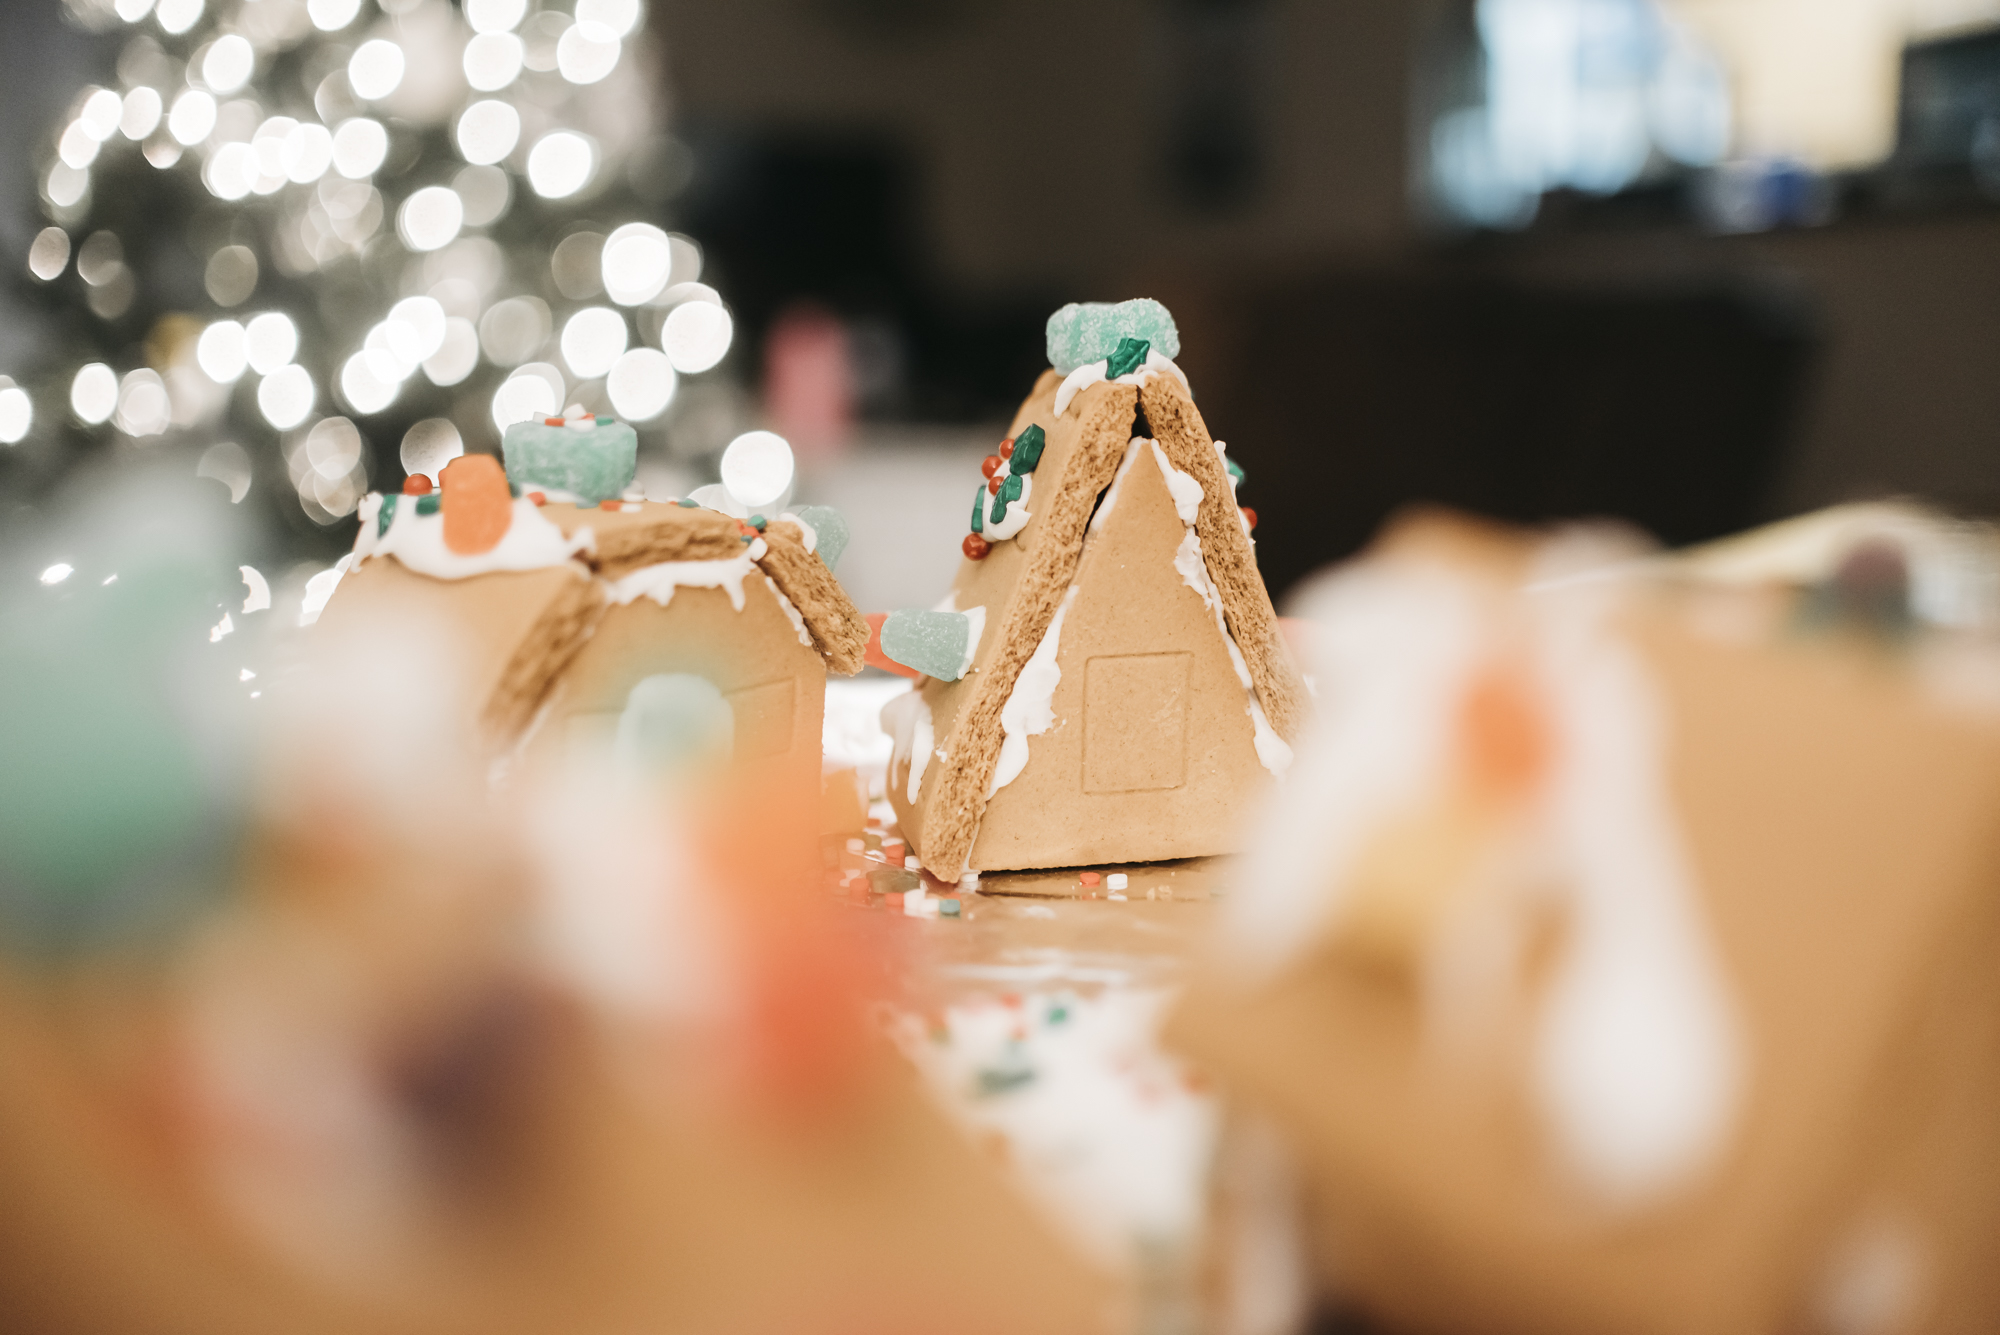 samanthawhitford.com gingerbread village christmas 2018 (16).jpg